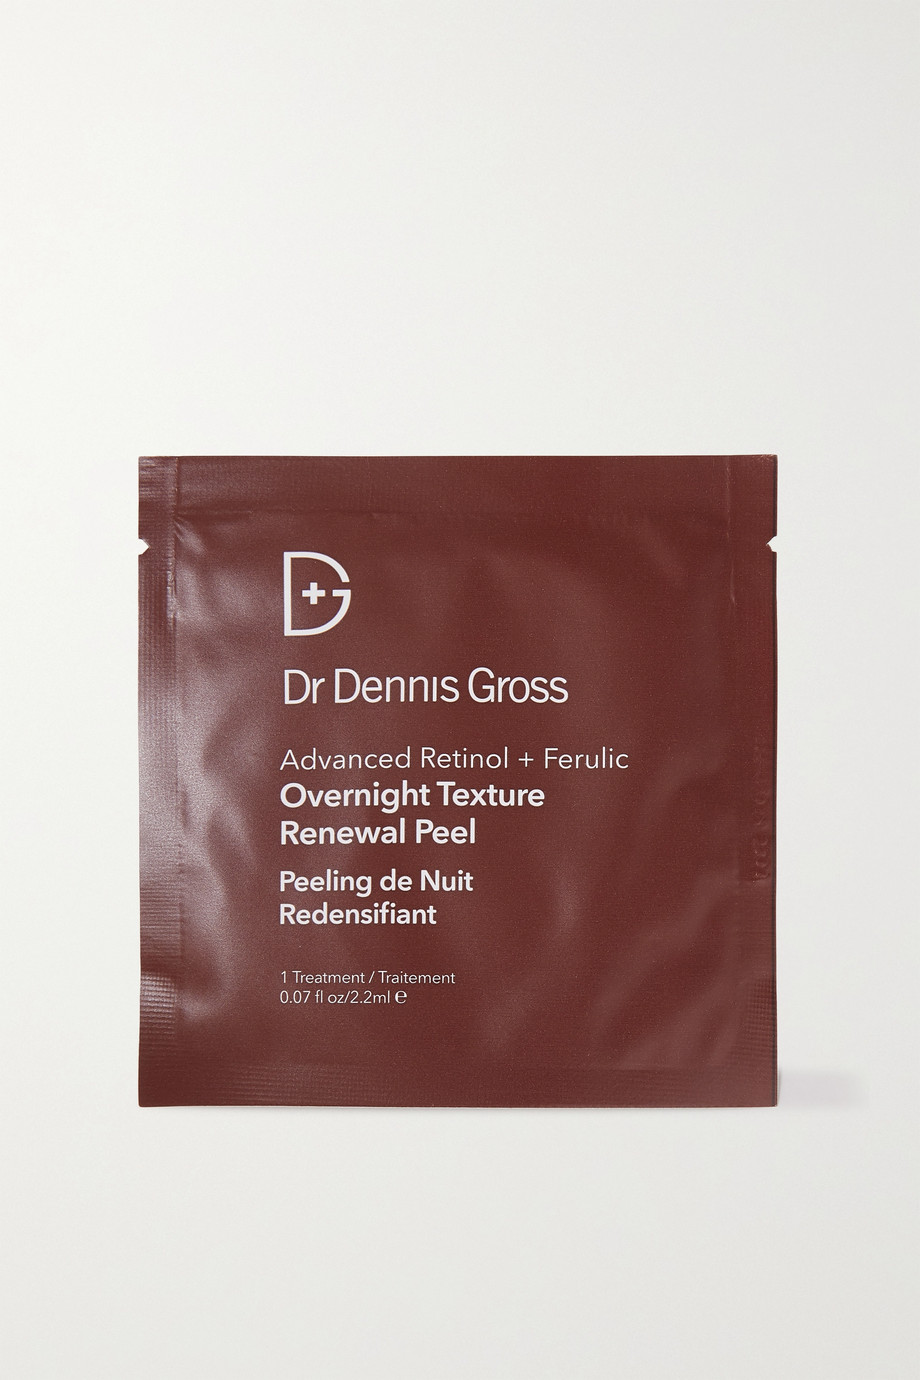 Dr. Dennis Gross Skincare Ferulic + Retinol Wrinkle Recovery Peel x 16